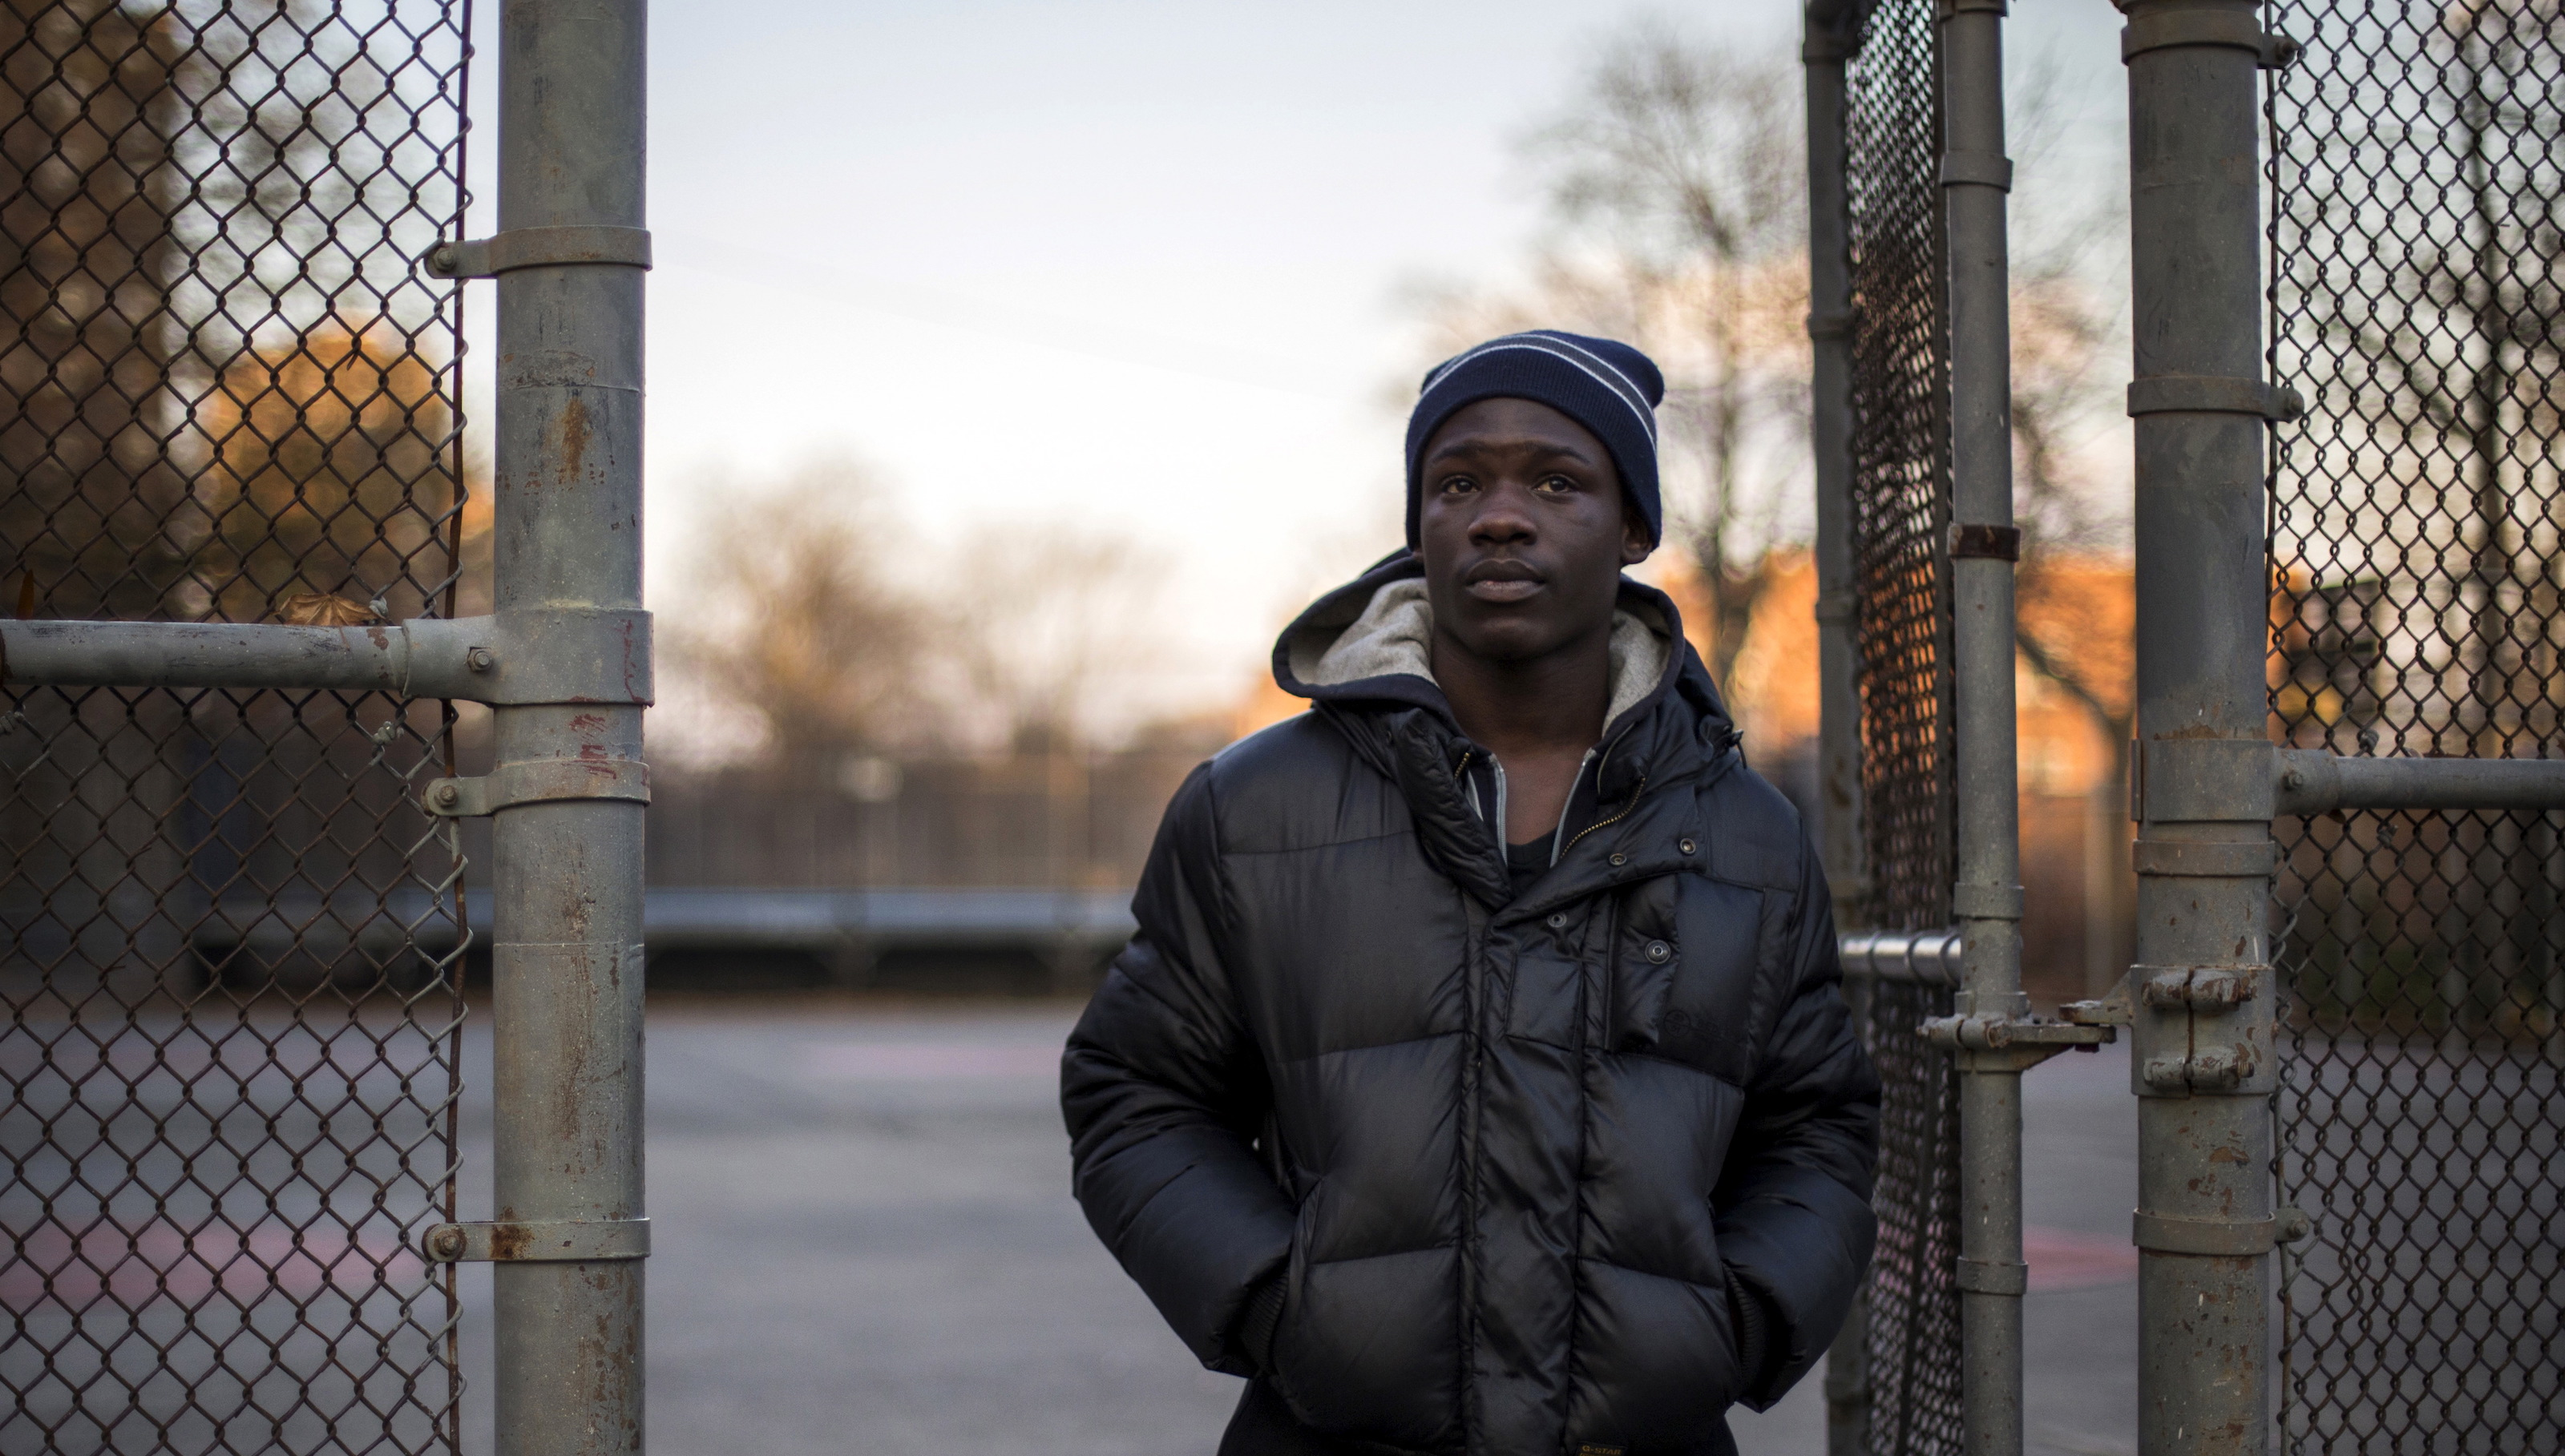 """Eric, 19, who did not want to share his full name, poses for a photograph in a playground outside his residence in the Bronx borough of New York, November 20, 2014. Eric says he was 17 years-old in 2012 when he was incarcerated on Rikers Island for committing """"A crime which was illegal."""" During a search on the school grounds where inmates attend class, Eric says he was ordered to strip naked. When he refused, he says he """"Got put in a headlock, officers started beating on me, punching me in my head, my body, kicking me, had me in fetal position, stomping on me."""" Directly after the incident Eric says the officers """"put me in flexicuffs then they (pepper) spray.""""  Eric say he was sent to solitary confinement after the incident because officers """"Said I assaulted an officer and that was that."""" When describing his experience at Rikers, he says """"Coming from the street to there just had me on guard. Being observant and just didn't want to become a victim, which I did. After that, it just made me be more aggressive and hostile."""" Rikers, one of the largest jail complexes in the country which houses around 9,800 prisoners, came under scrutiny after the Justice Department in August 2014 issued a report that described a pattern of violent abuse of male inmates aged 16 to 18 by jail staff. In response to questions from Reuters, a spokesman for Rikers Island Department of Correction (DOC) said that, """"Since Commissioner (Joseph) Ponte's appointment last year, he has significantly reformed the care and custody of adolescent inmates, resulting in substantial decline in violence in the adolescent facility."""" The spokesman added that safety for staff and inmates is Commissioner Ponte's """"top priority"""" and that """"DOC has a  zero-tolerance police with regards to abuse."""" Reuters has been unable to independently verify the statements provided by the individual in this portrait. Picture taken November 20, 2014. REUTERS/Elizabeth Shafiroff - RTX1MUA9"""